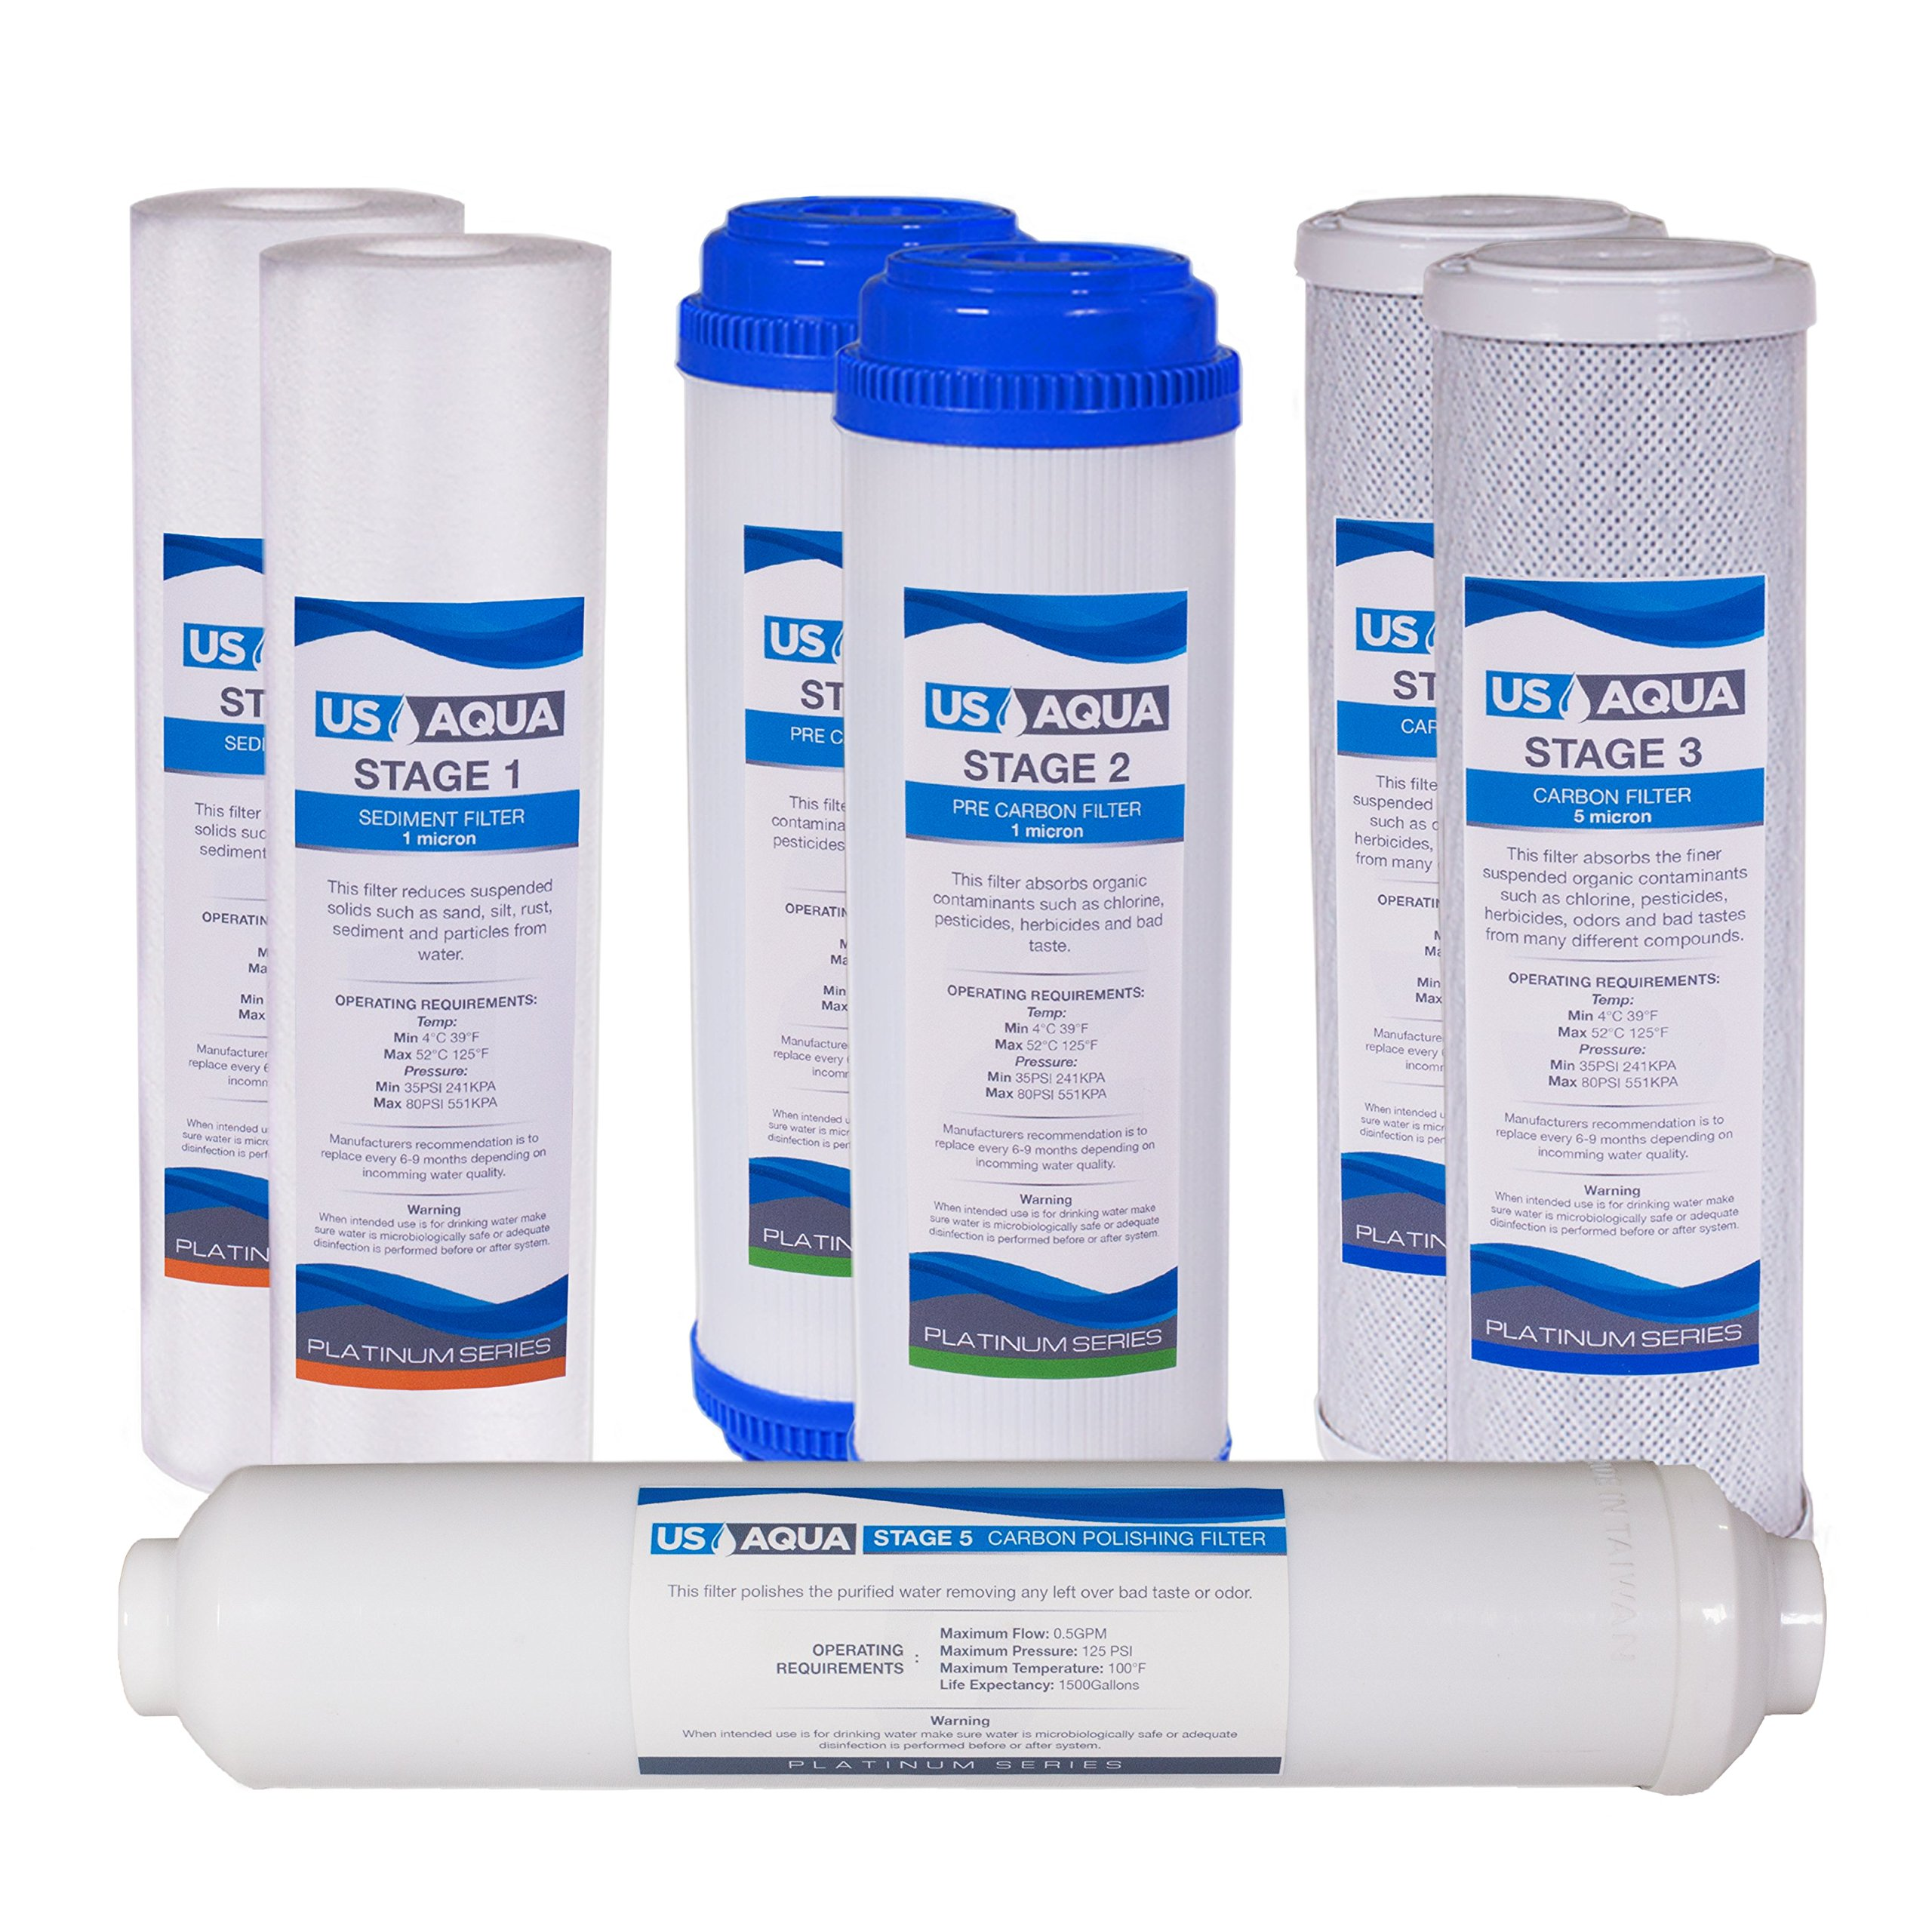 US Aqua Platinum Series 1-Year Filter Replacement Set For Standard Under Sink 5-Stage Reverse Osmosis Water Filtration Systems